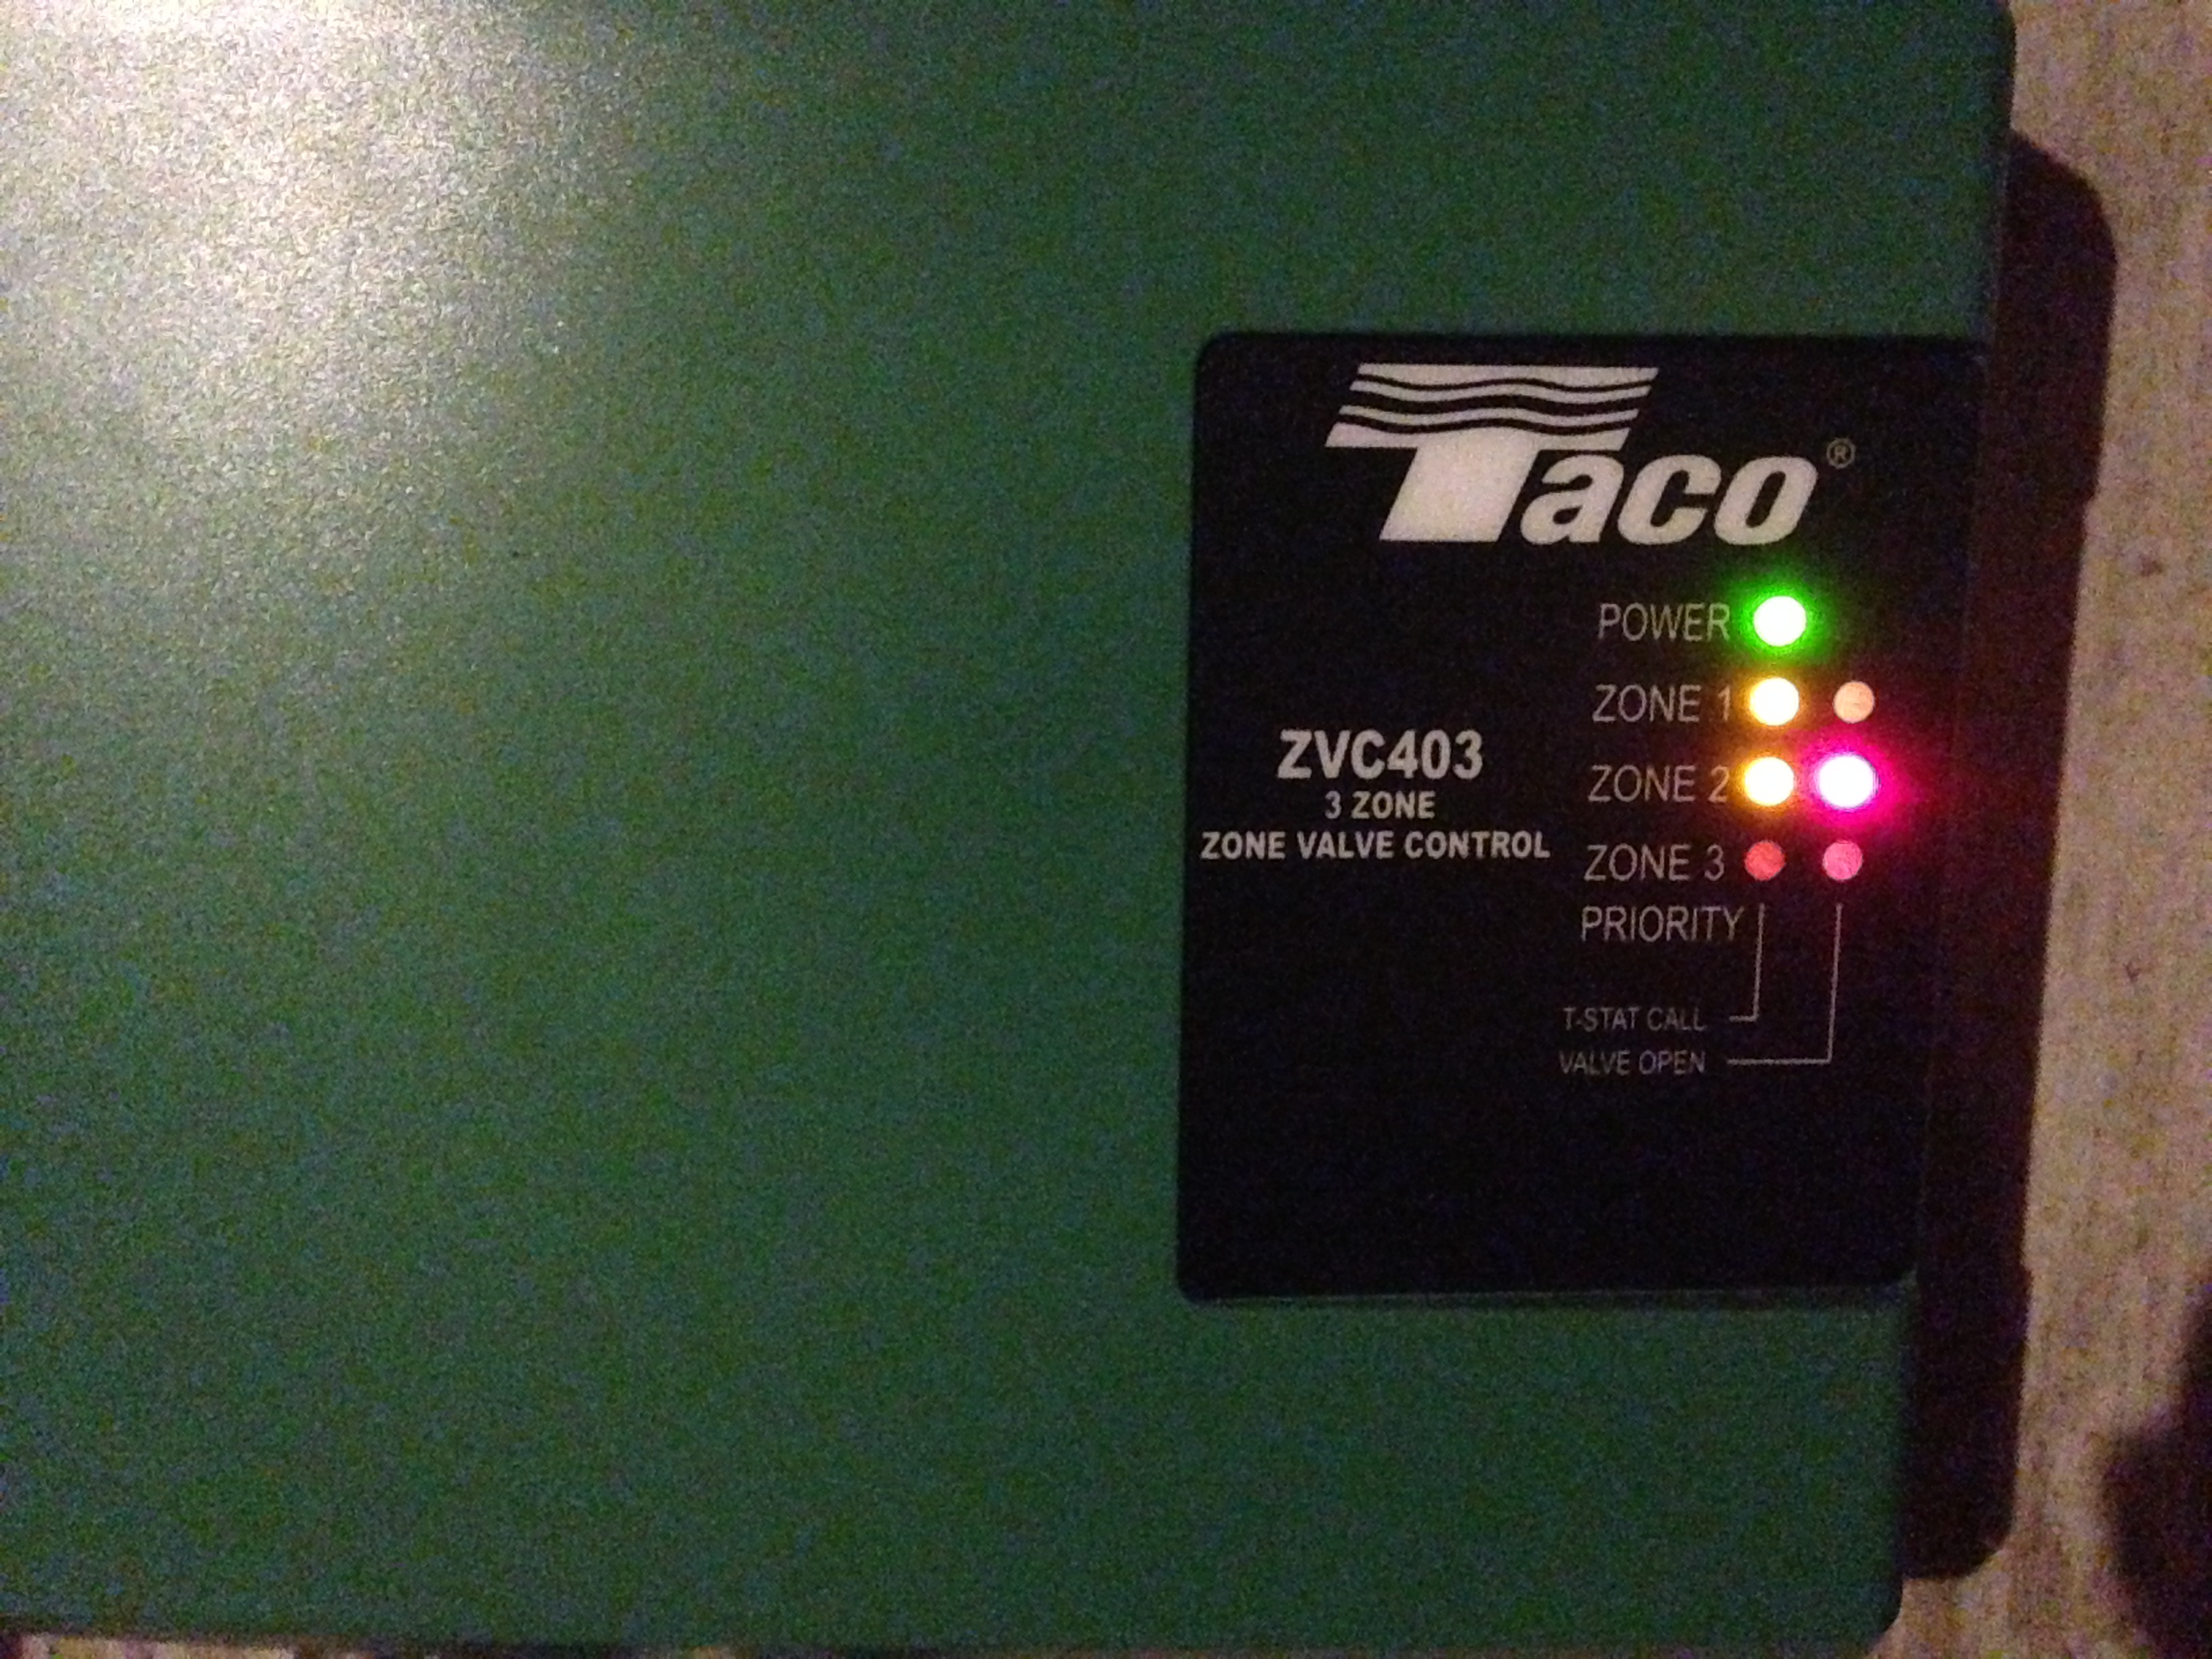 Taco Zvc403 Issue Heating Help The Wall 571 Zone Valve Wiring Img 2385